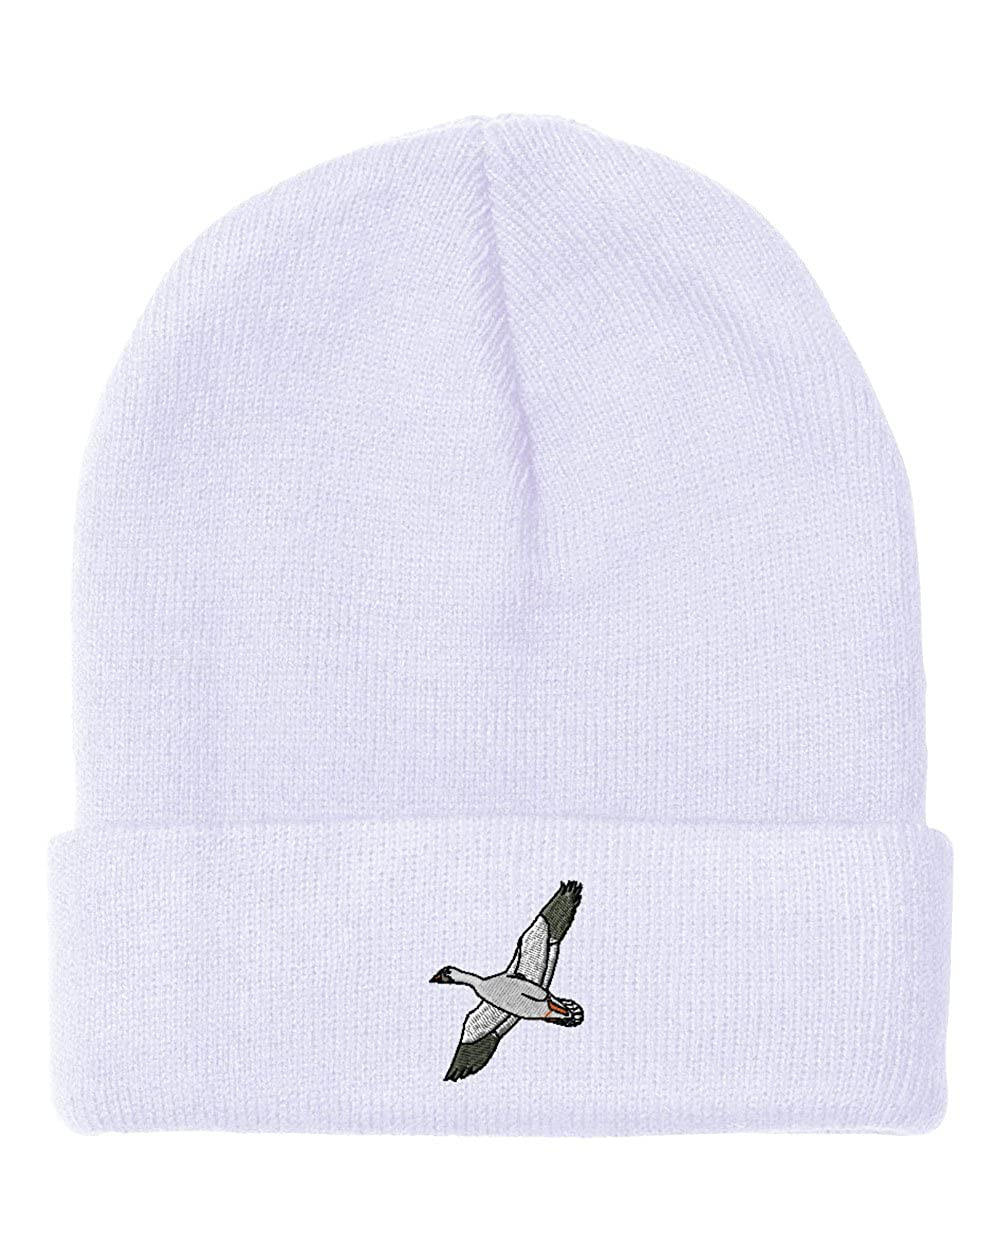 17cbf912814 Amazon.com  Snow Goose Embroidery Embroidered Beanie Skully Hat Cap White   Clothing